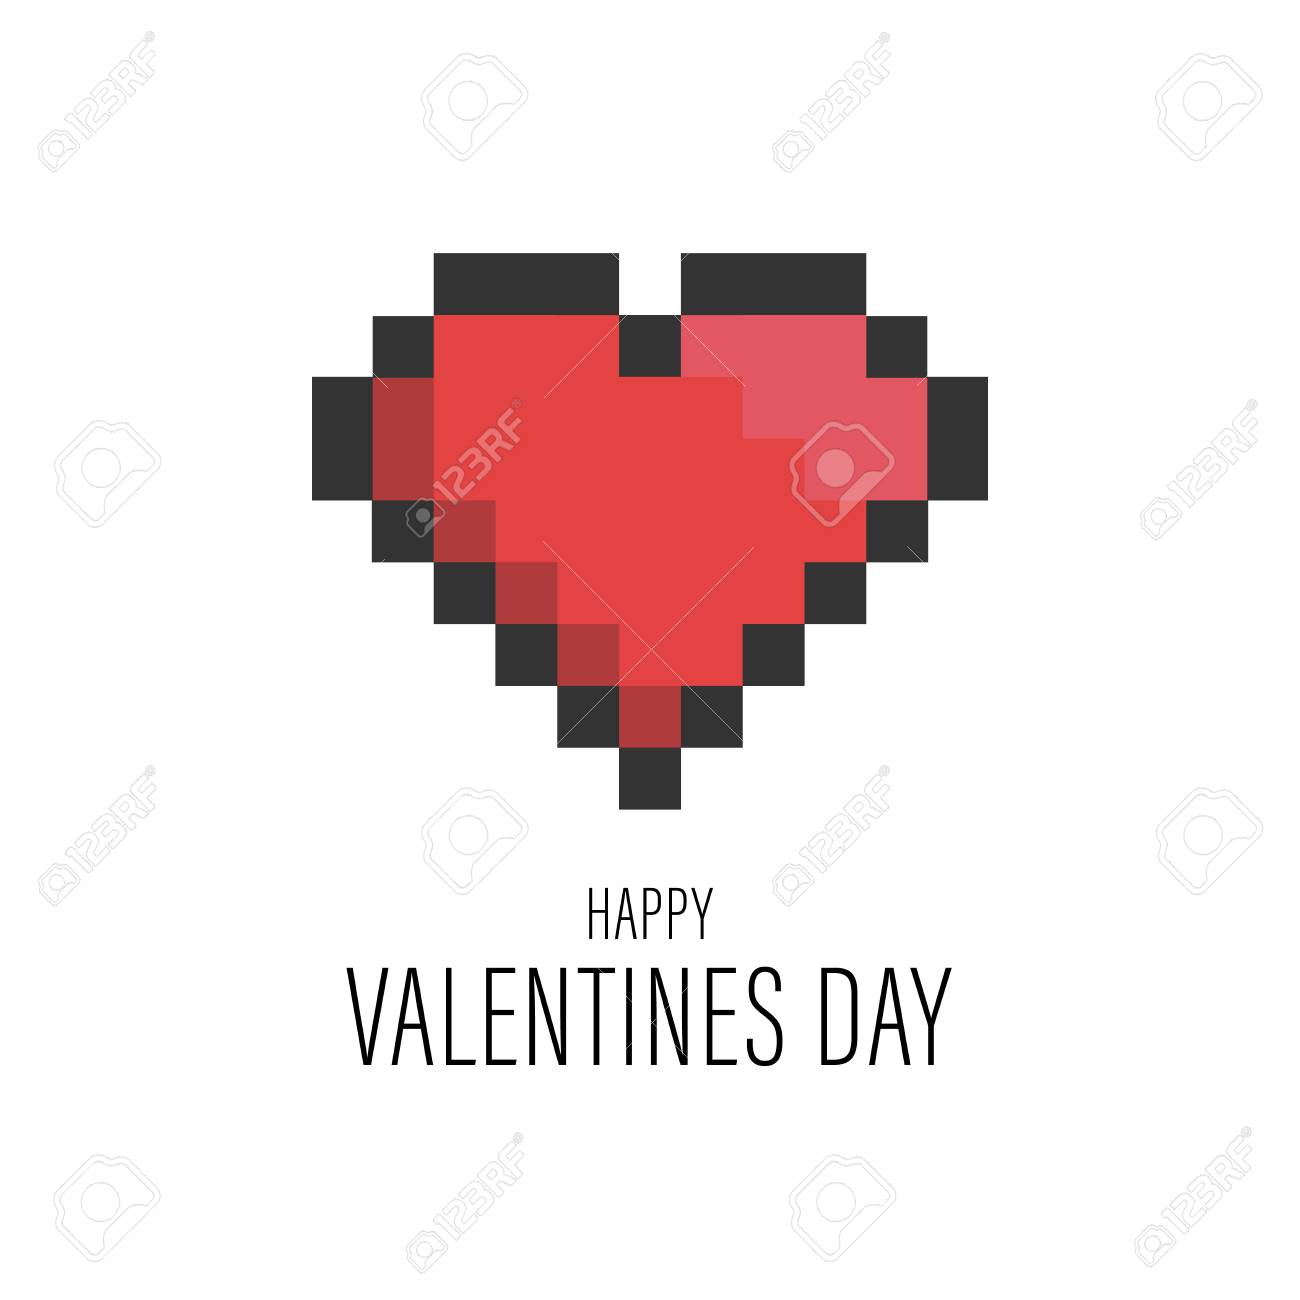 Funny Valentines Day Greeting Card With Pixel Heart For Nerds